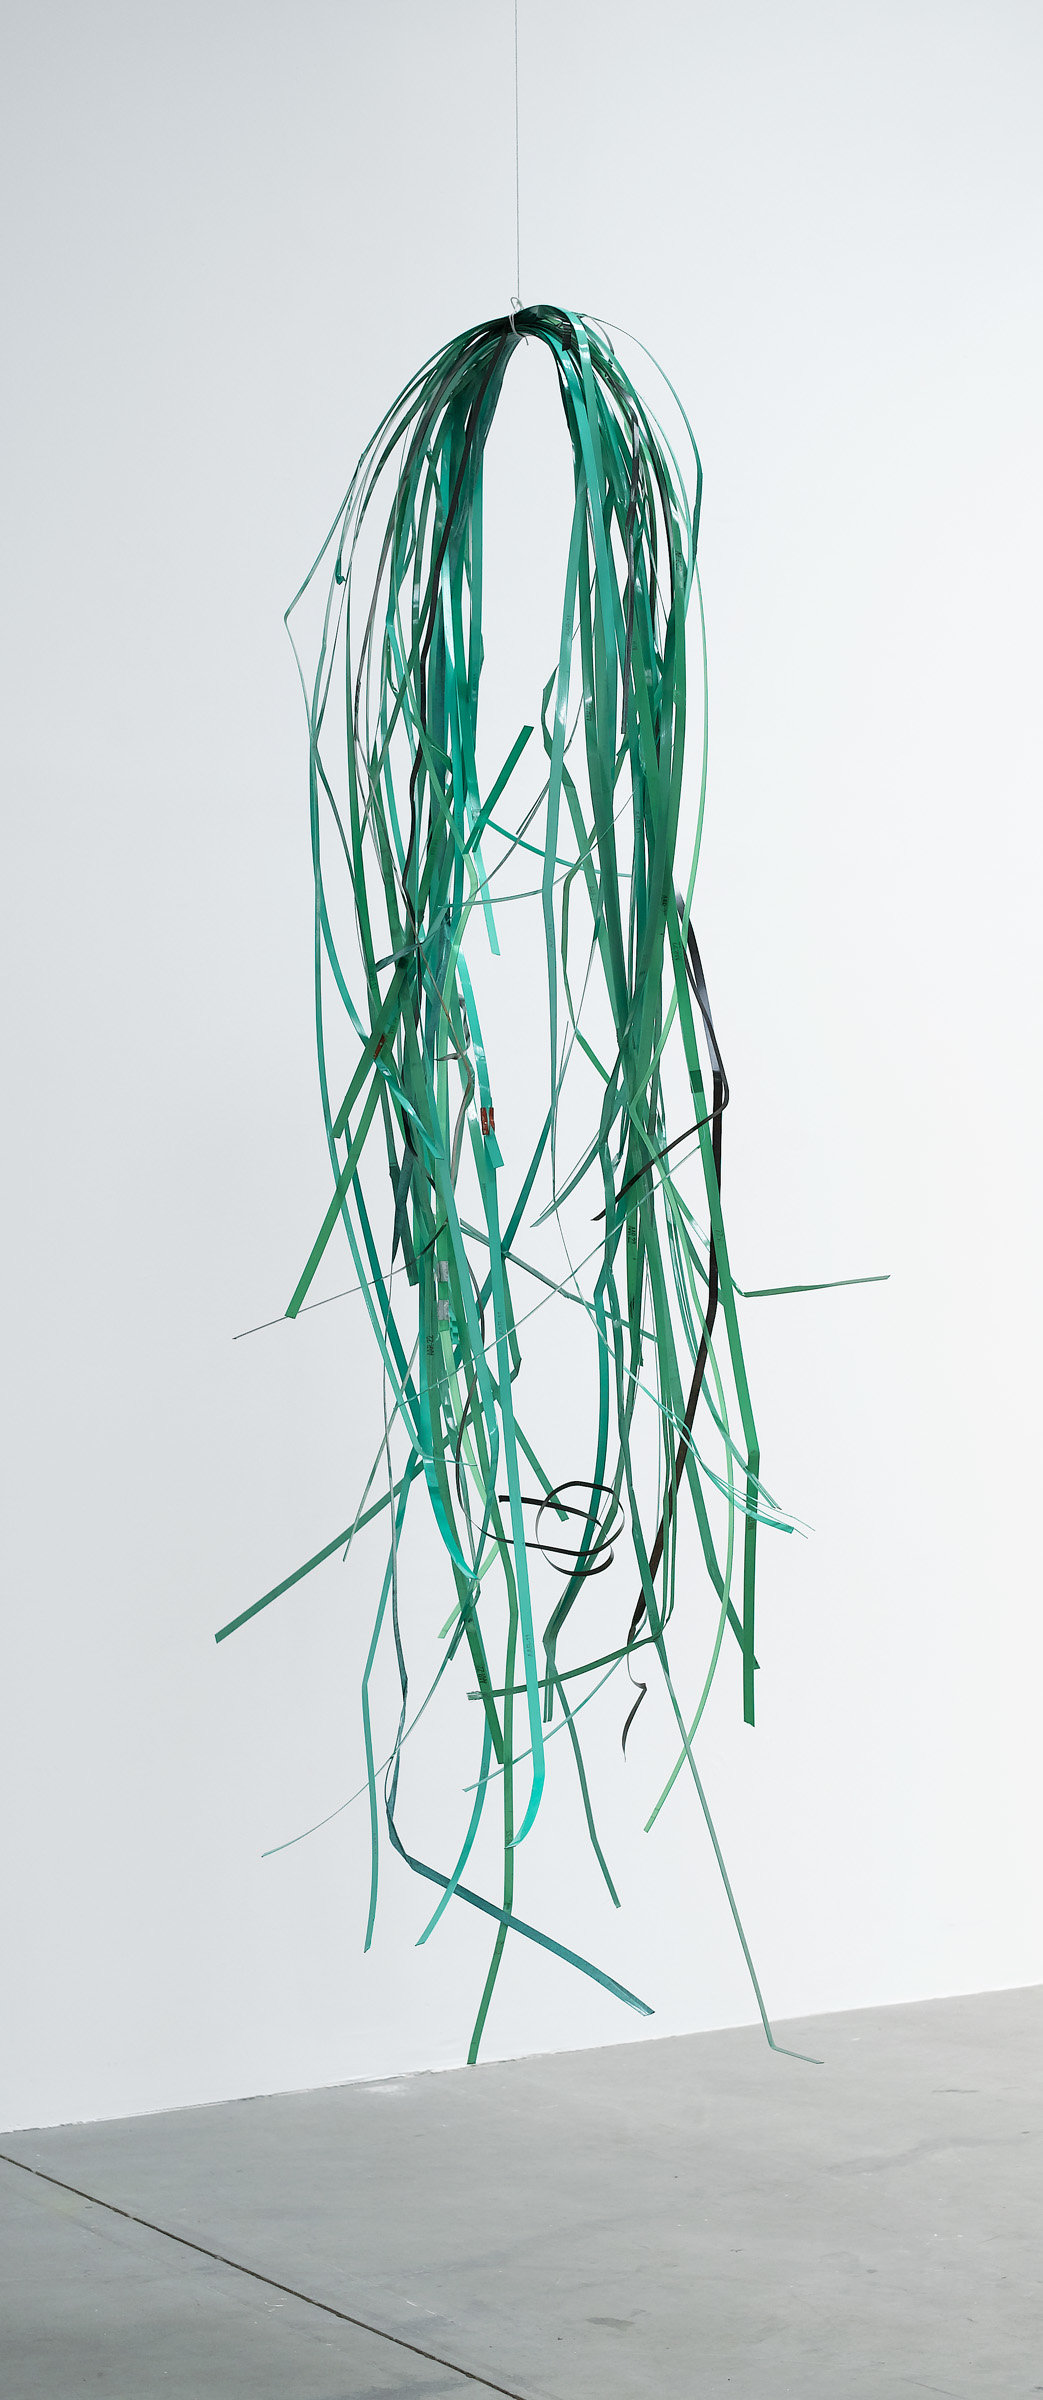 ", 2007. Plastic strapping, metal strapping, cotton twine, and screw, 96"" x 32"" x 32"" (243.8 cm x 81.3 cm x 81.3 cm)."